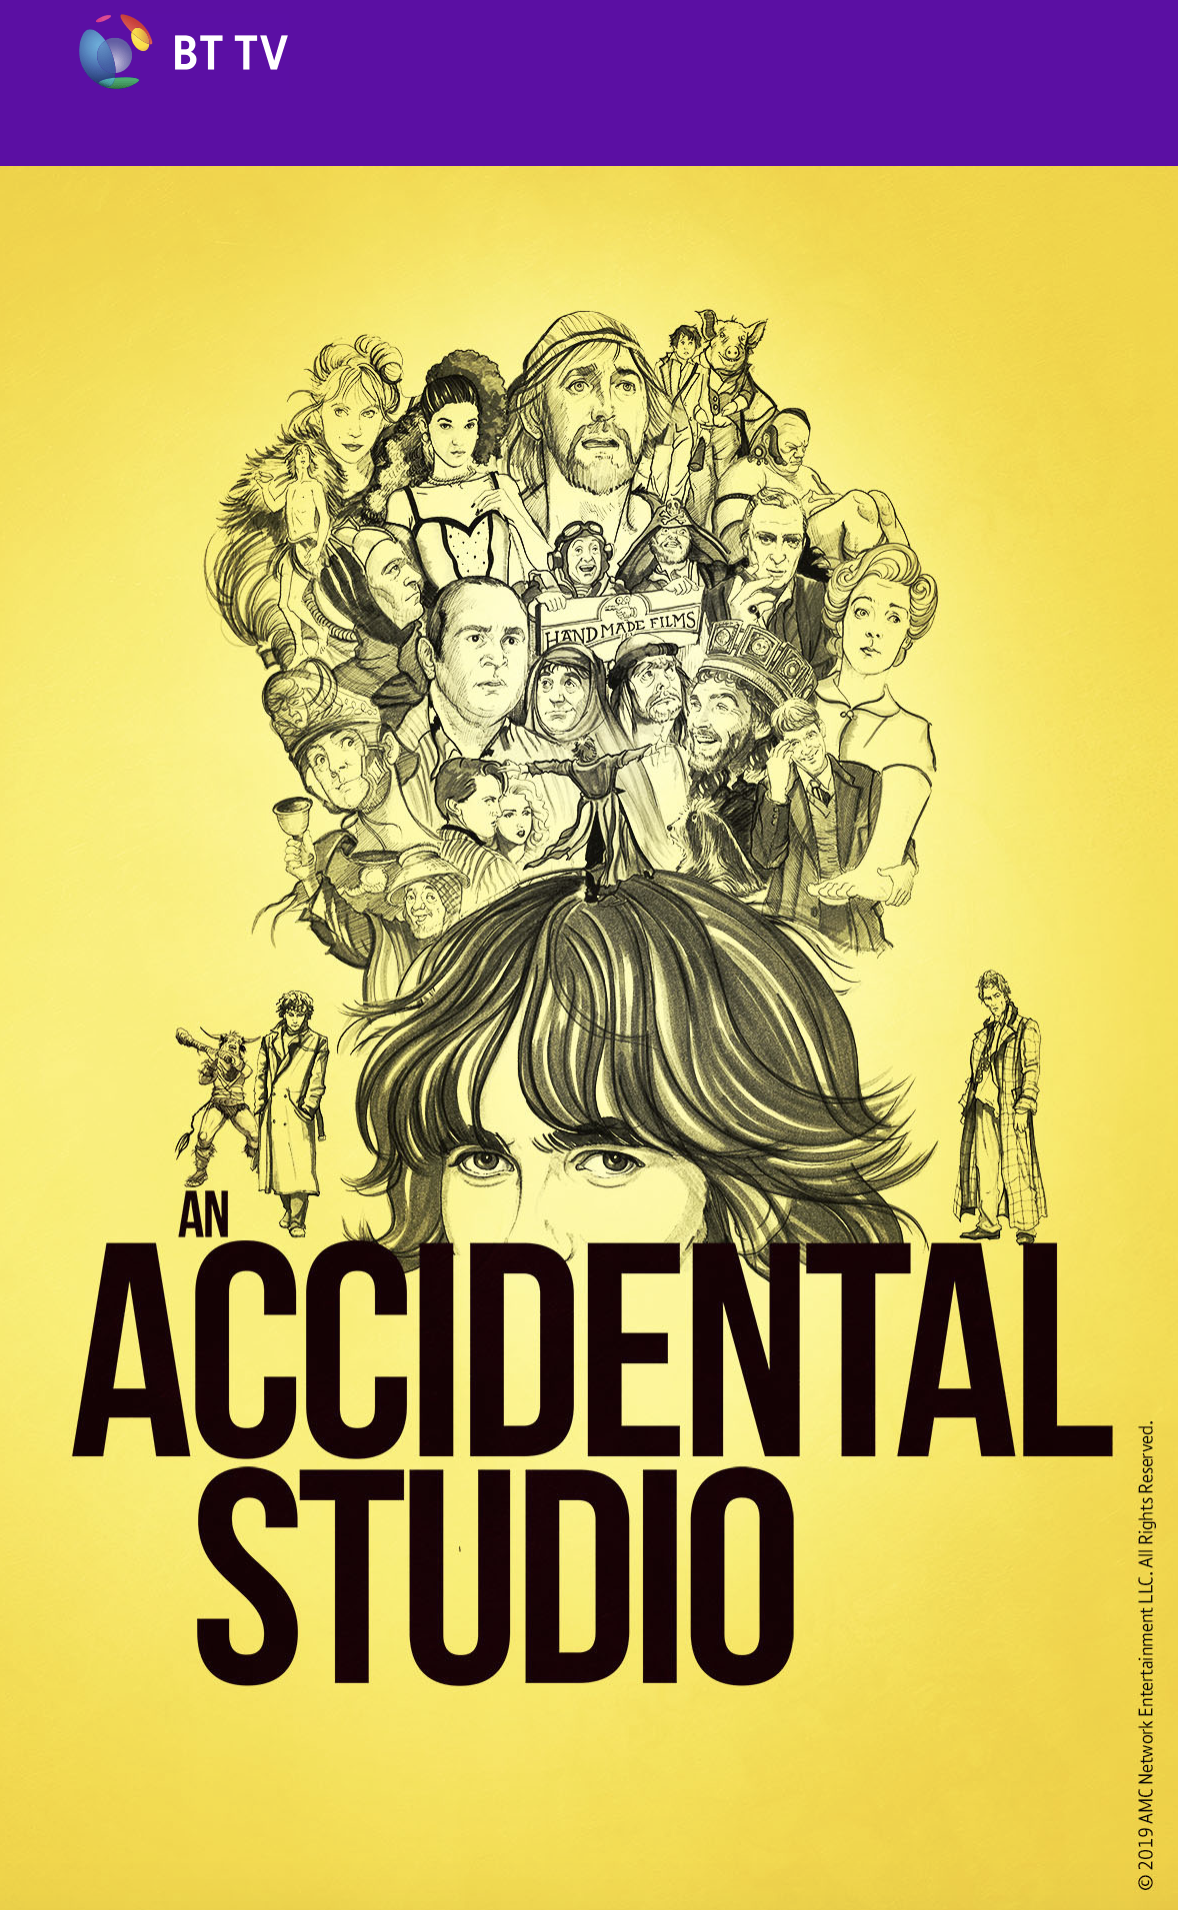 accidental studio email about handmade films documentary bt amc